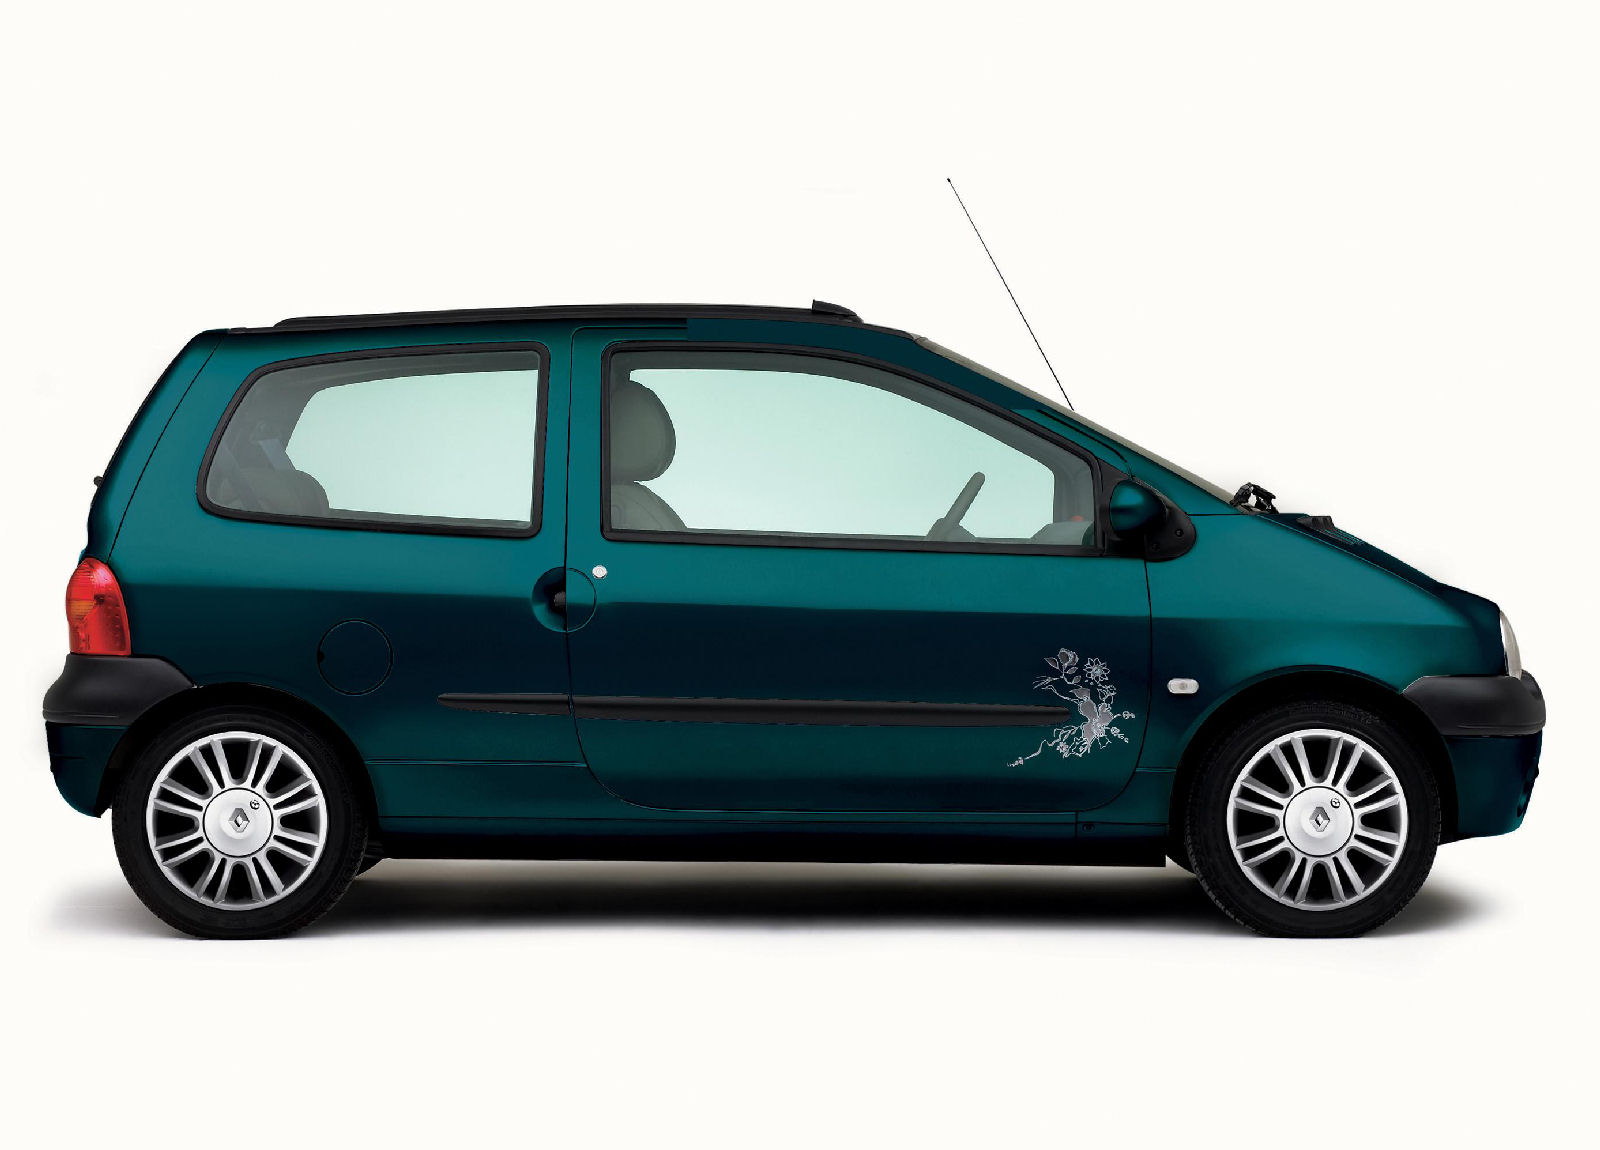 verte d photo media fr 12694 HD ren2006twingo